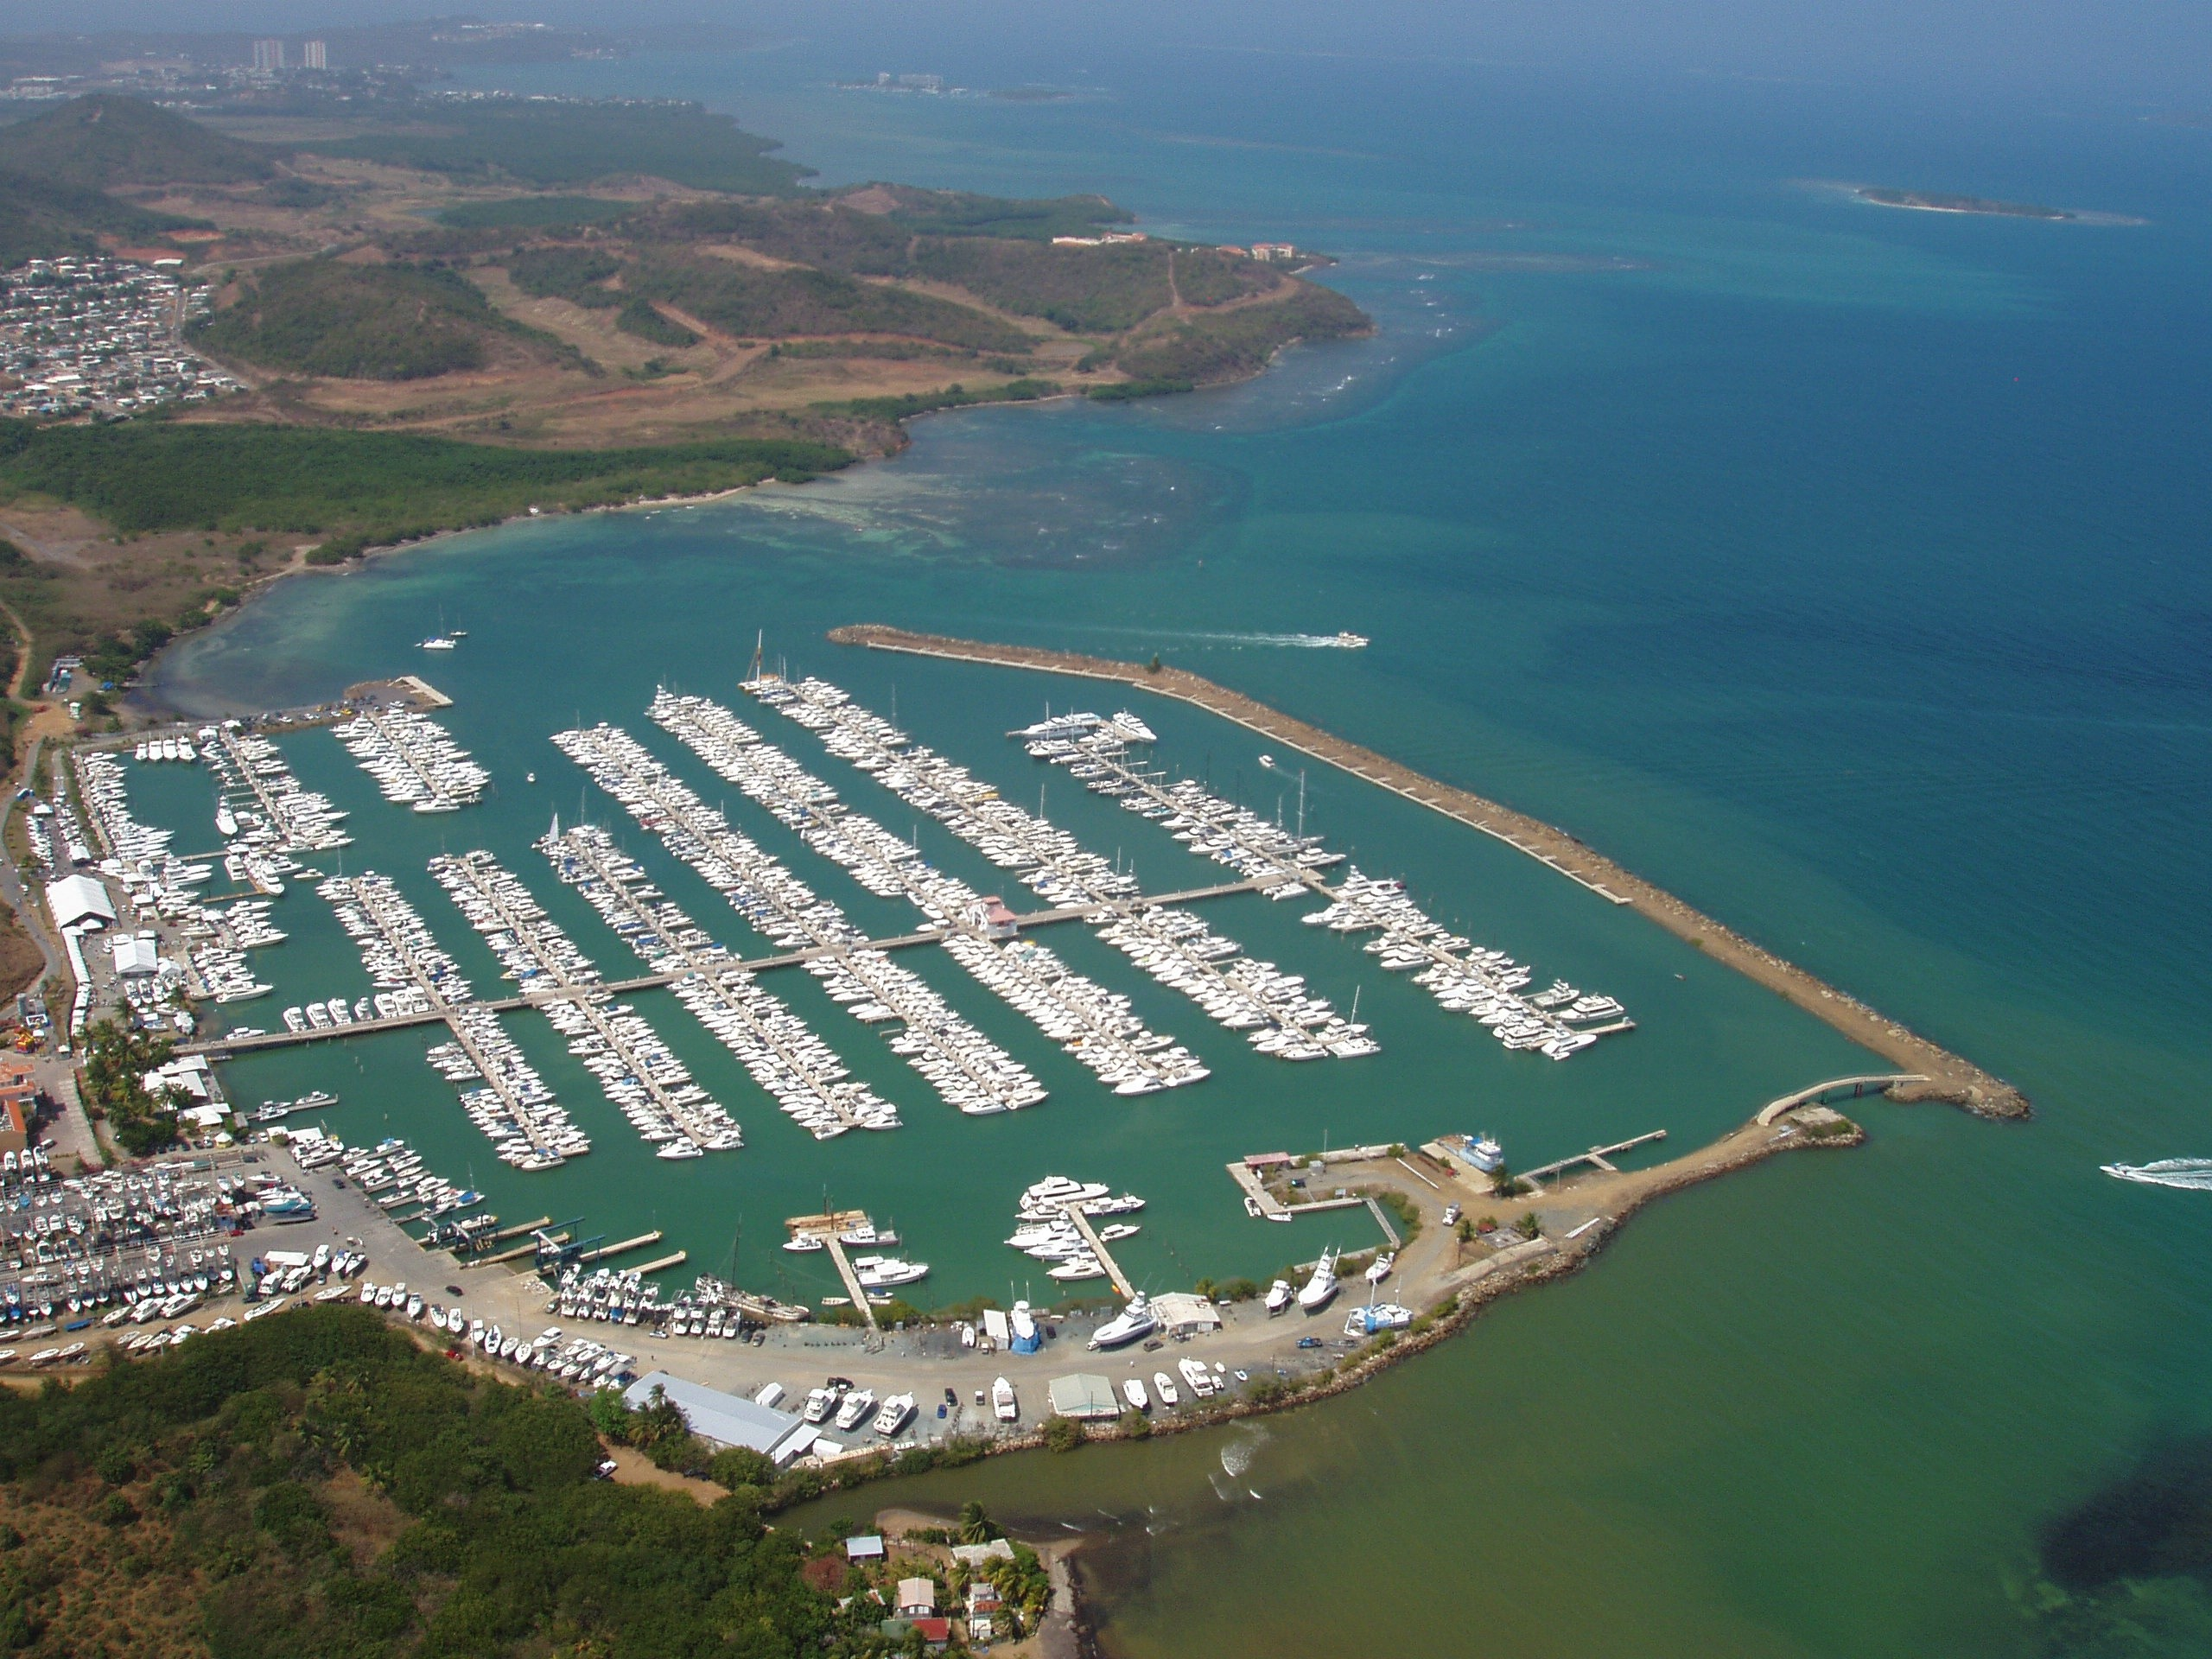 2560x1920 Fajardo, Puerto Rico - Puerto Del Rey Marina - this is the largest marina  in the Caribbean. We were staying in Fajardo for one night and I do not  know if it ...